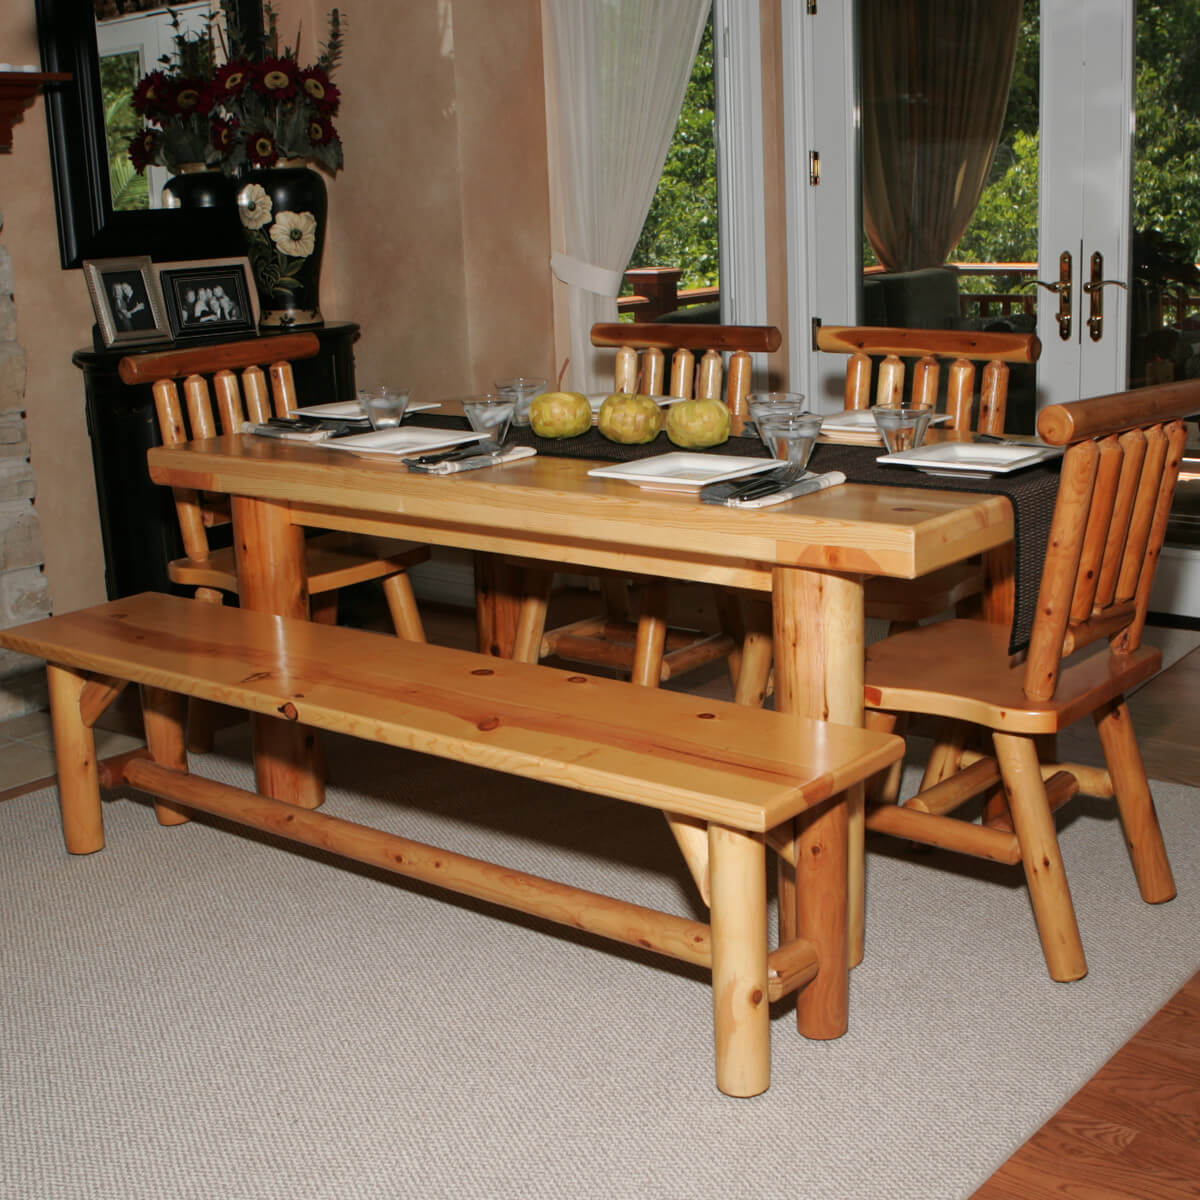 Wonderful Hereu0027s A Dining Table Set With Bench Perfect For The Log Cabin Or Home.  Seating Part 23